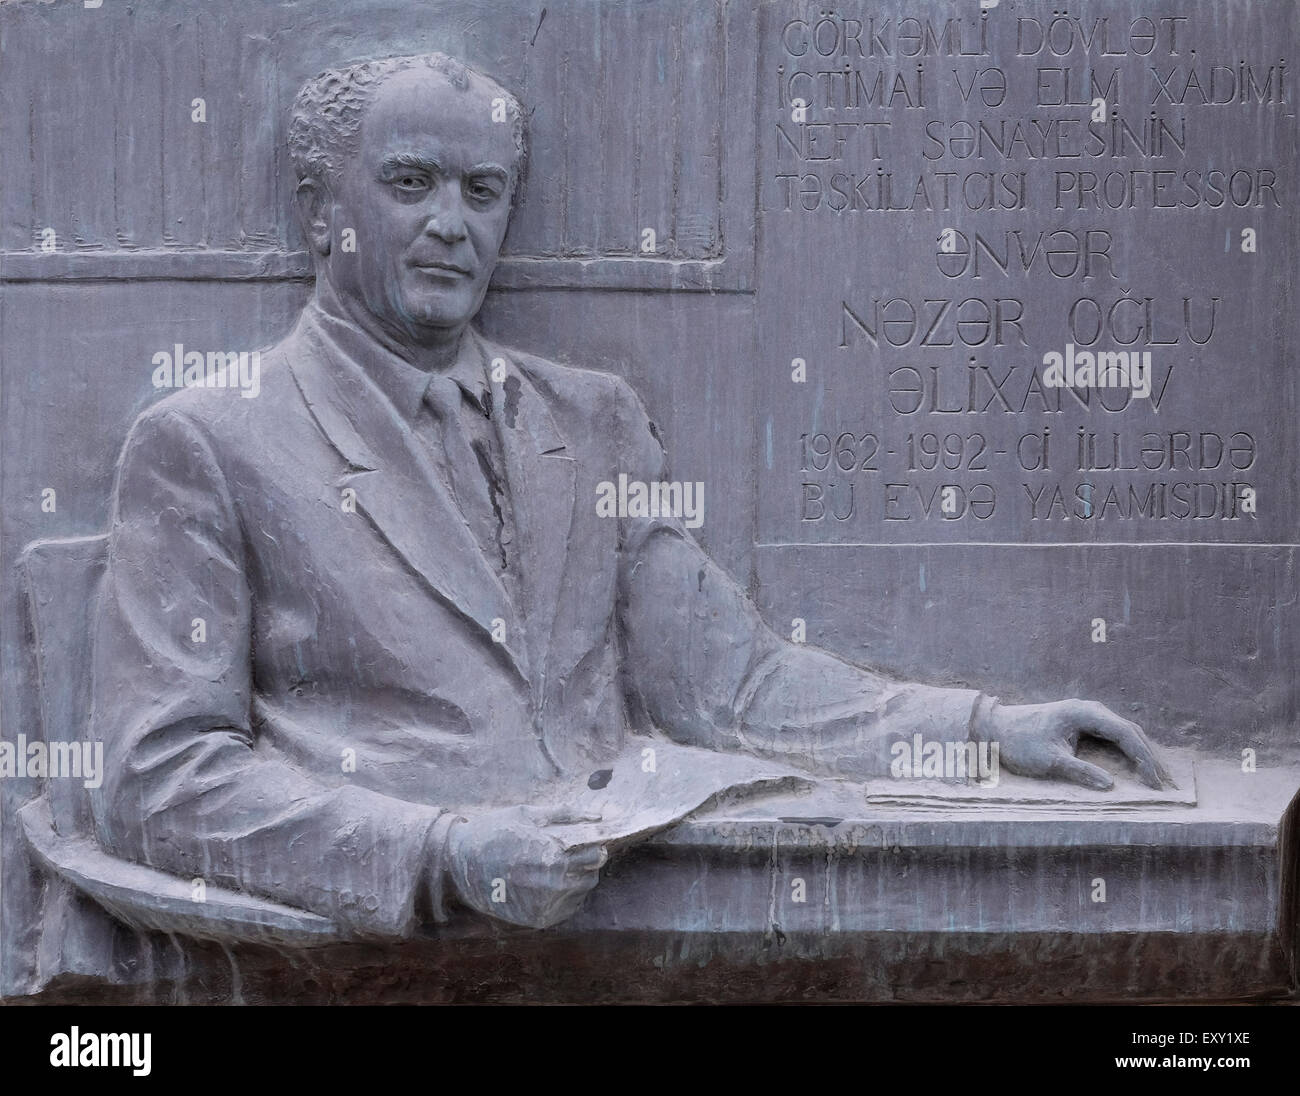 Carved figure of Anvar Alikhanov an Azerbaijani social activist in the city of Baku capital of AzerbaijanStock Photo